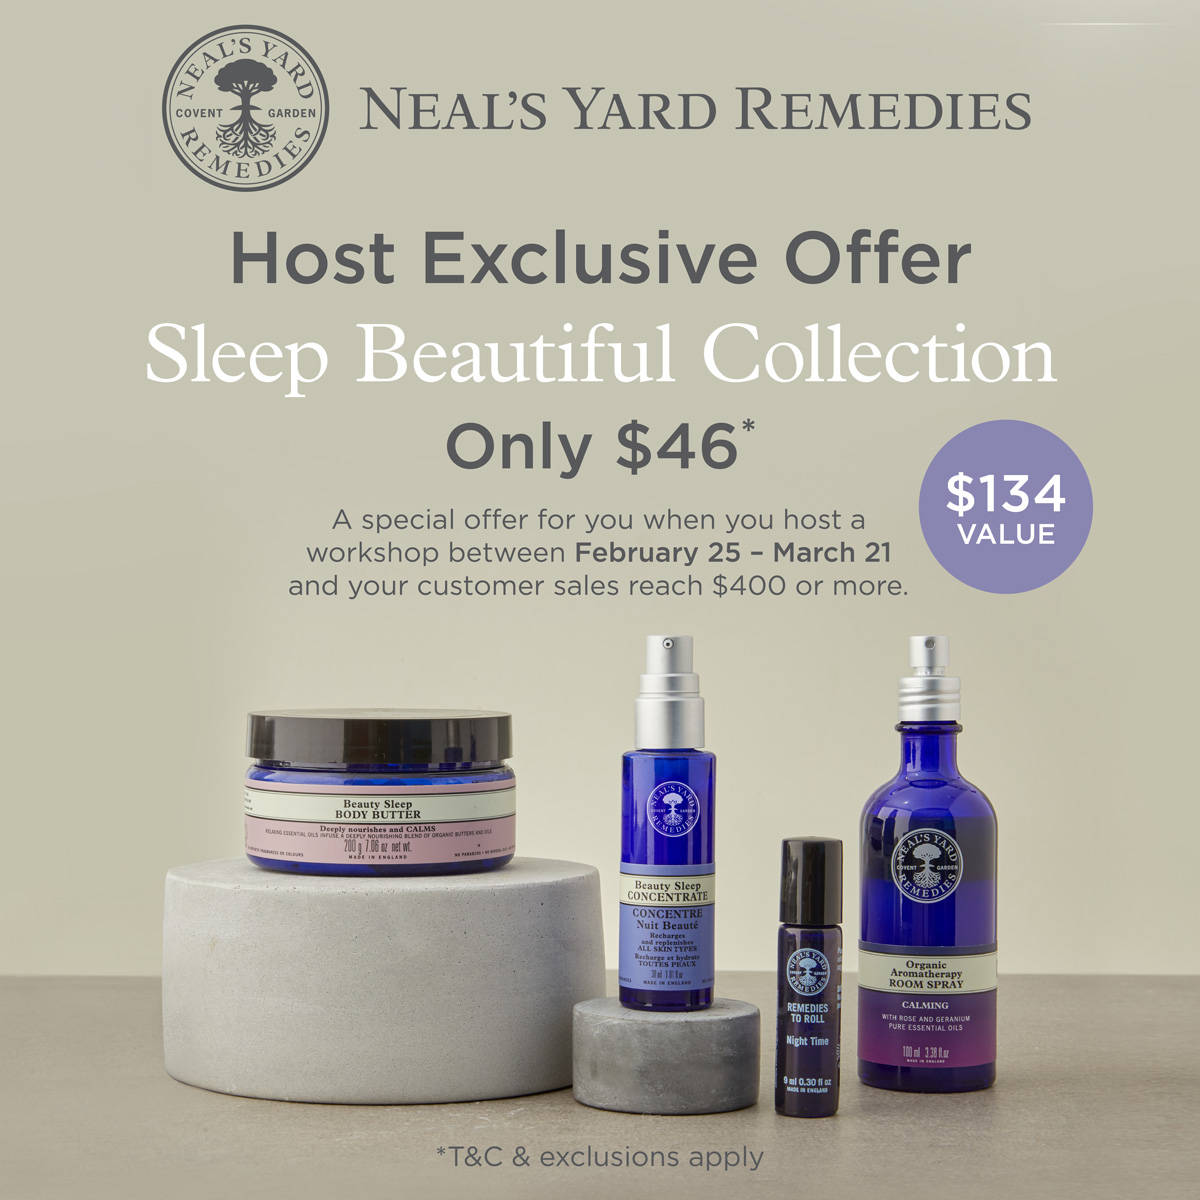 Sleep Beautiful Collection - Host Exclusive Offer.